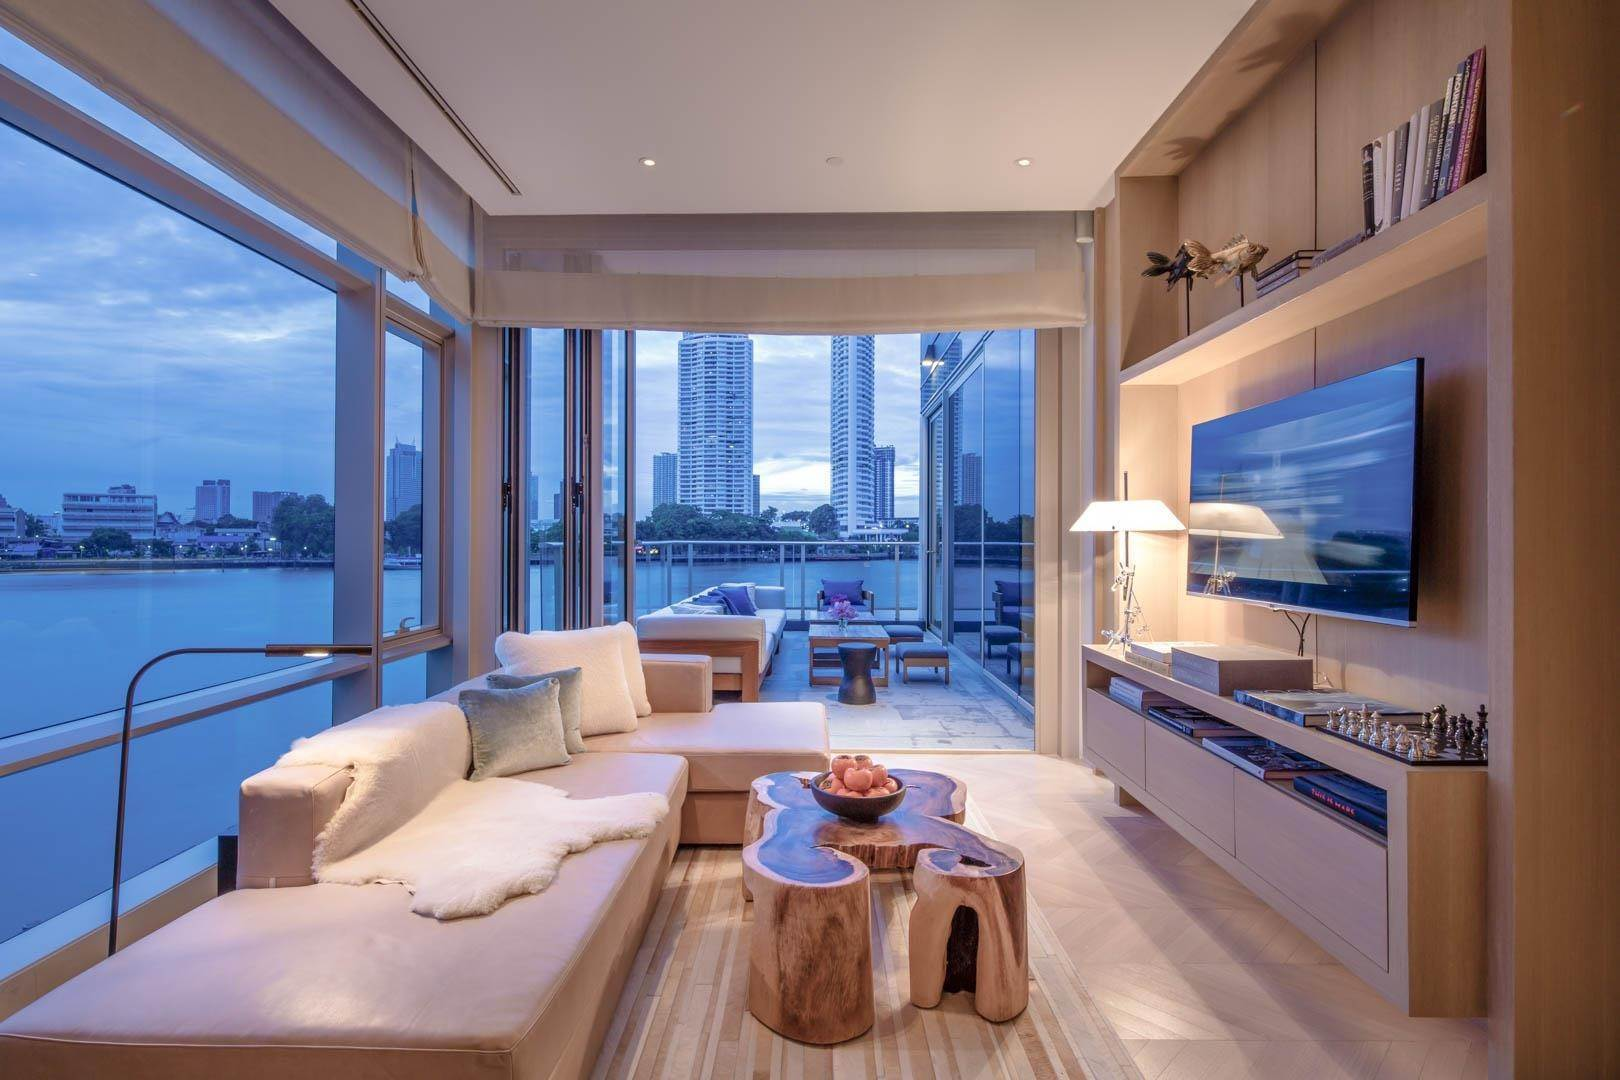 Condominium for Sale at Four Seasons Private Residences, Bangkok, 4 Bedroom, Duplex Bangkok, Thailand